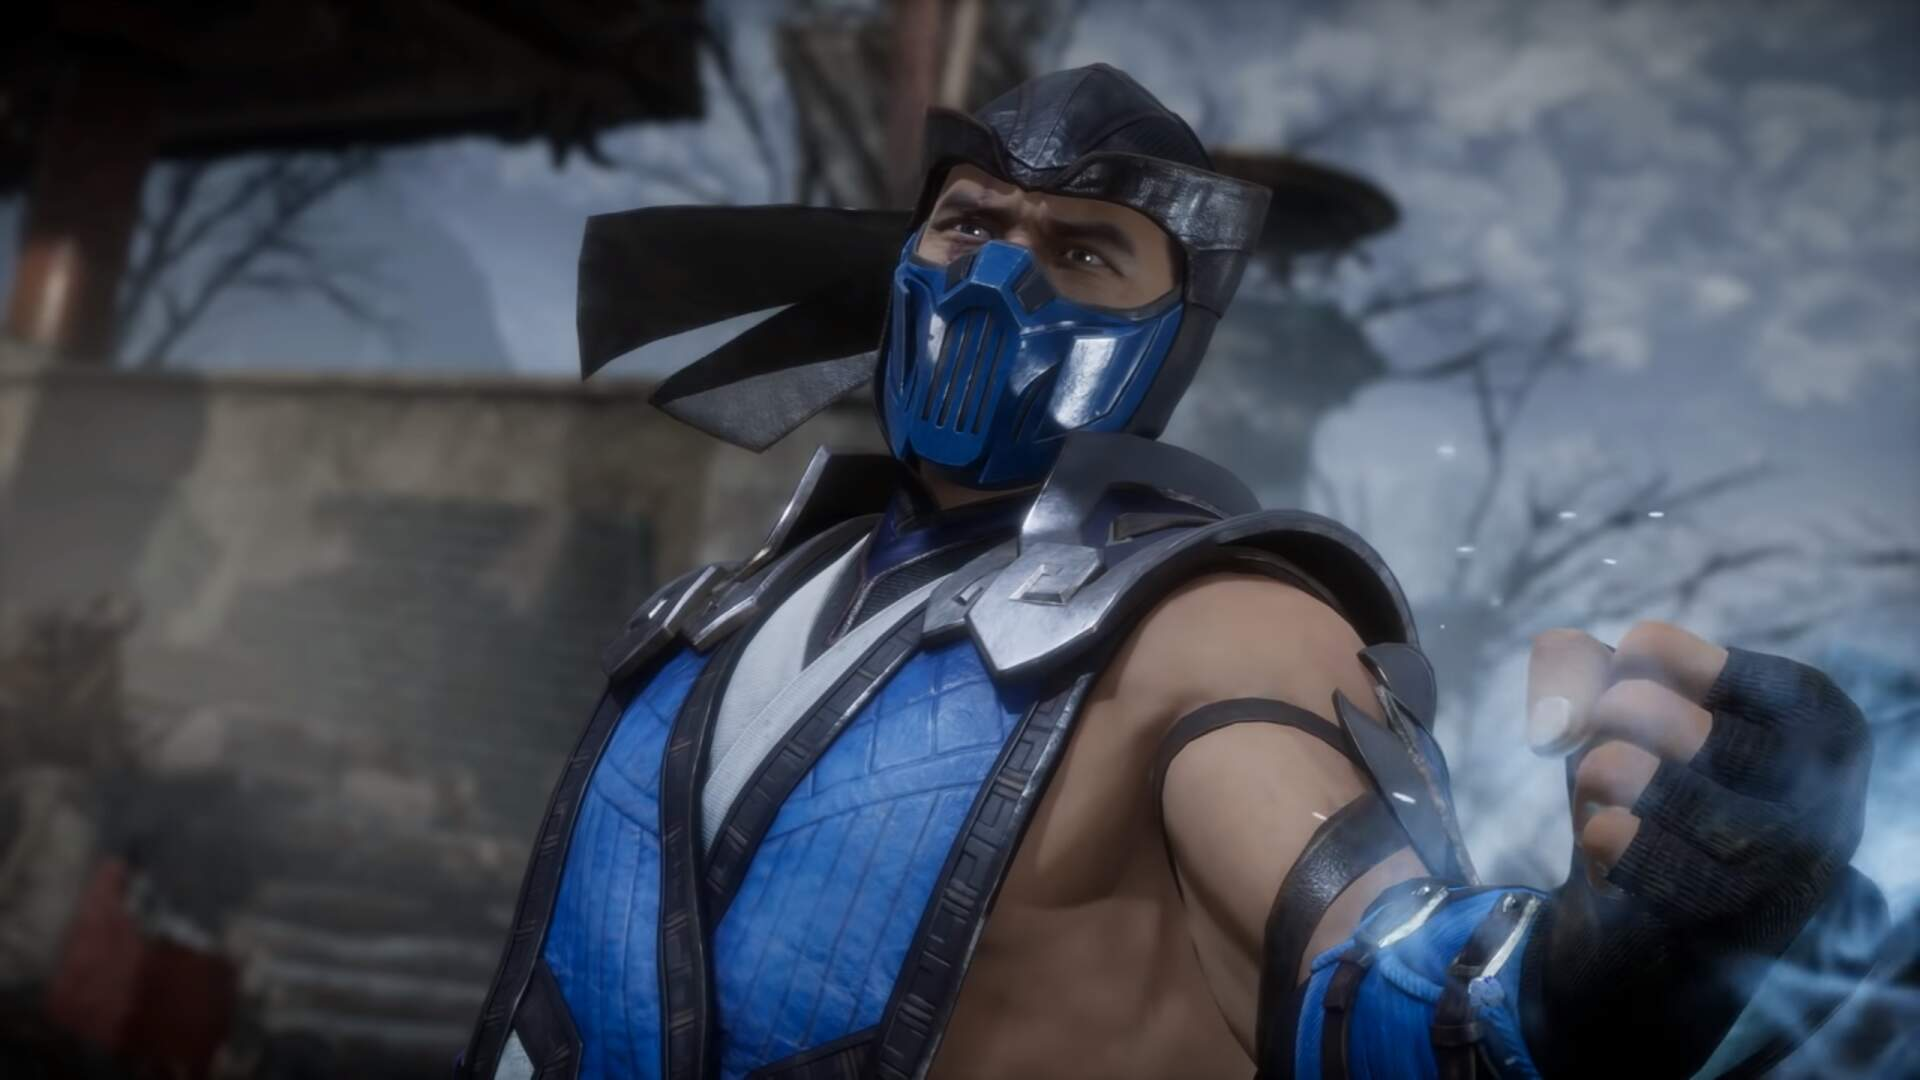 New Mortal Kombat 11 Update Will Add Krossplay For PS4 and Xbox One [Update]